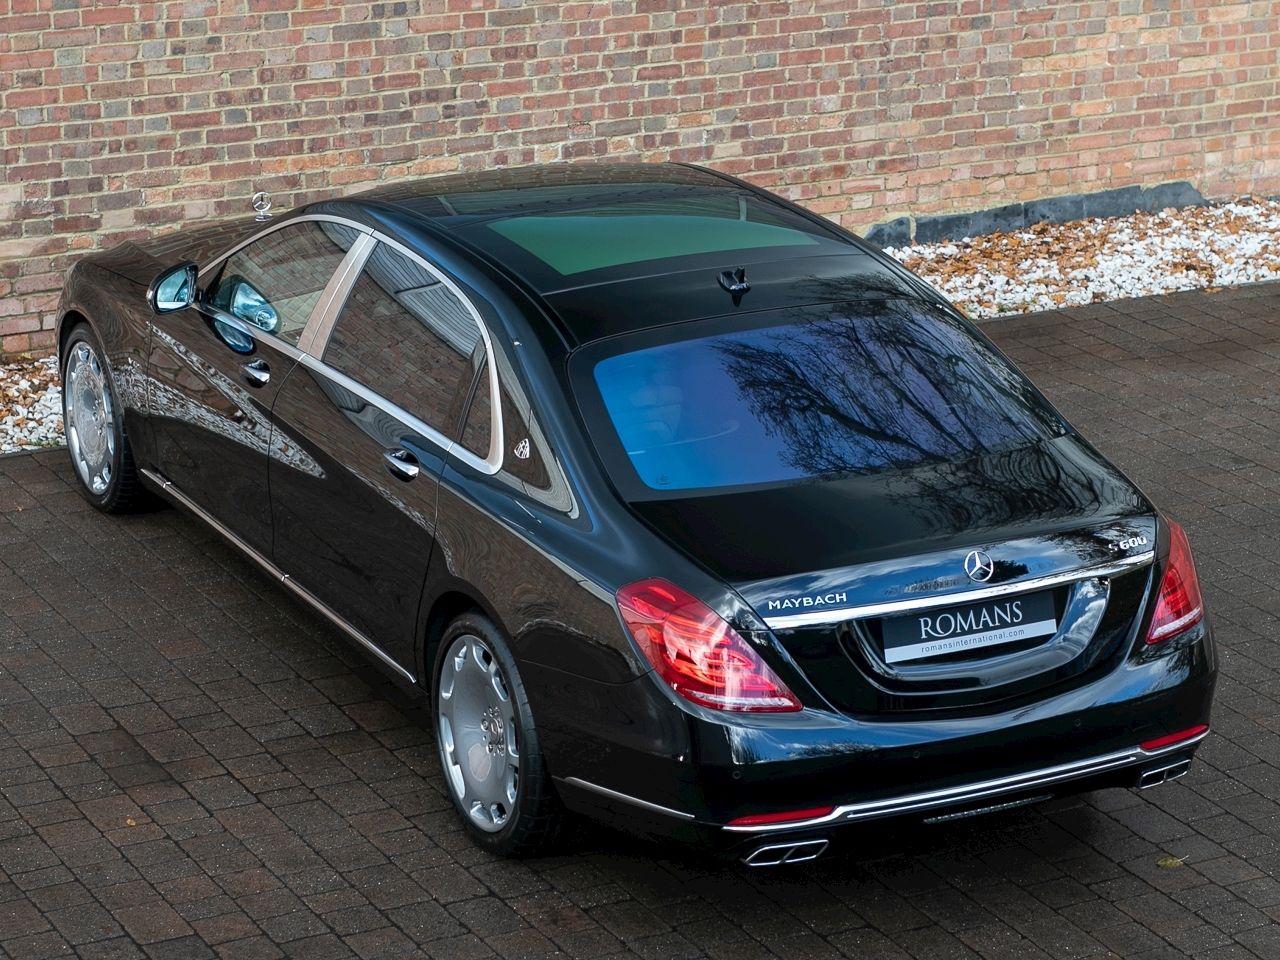 2017 used mercedes benz s class maybach s600 obsidian black. Black Bedroom Furniture Sets. Home Design Ideas